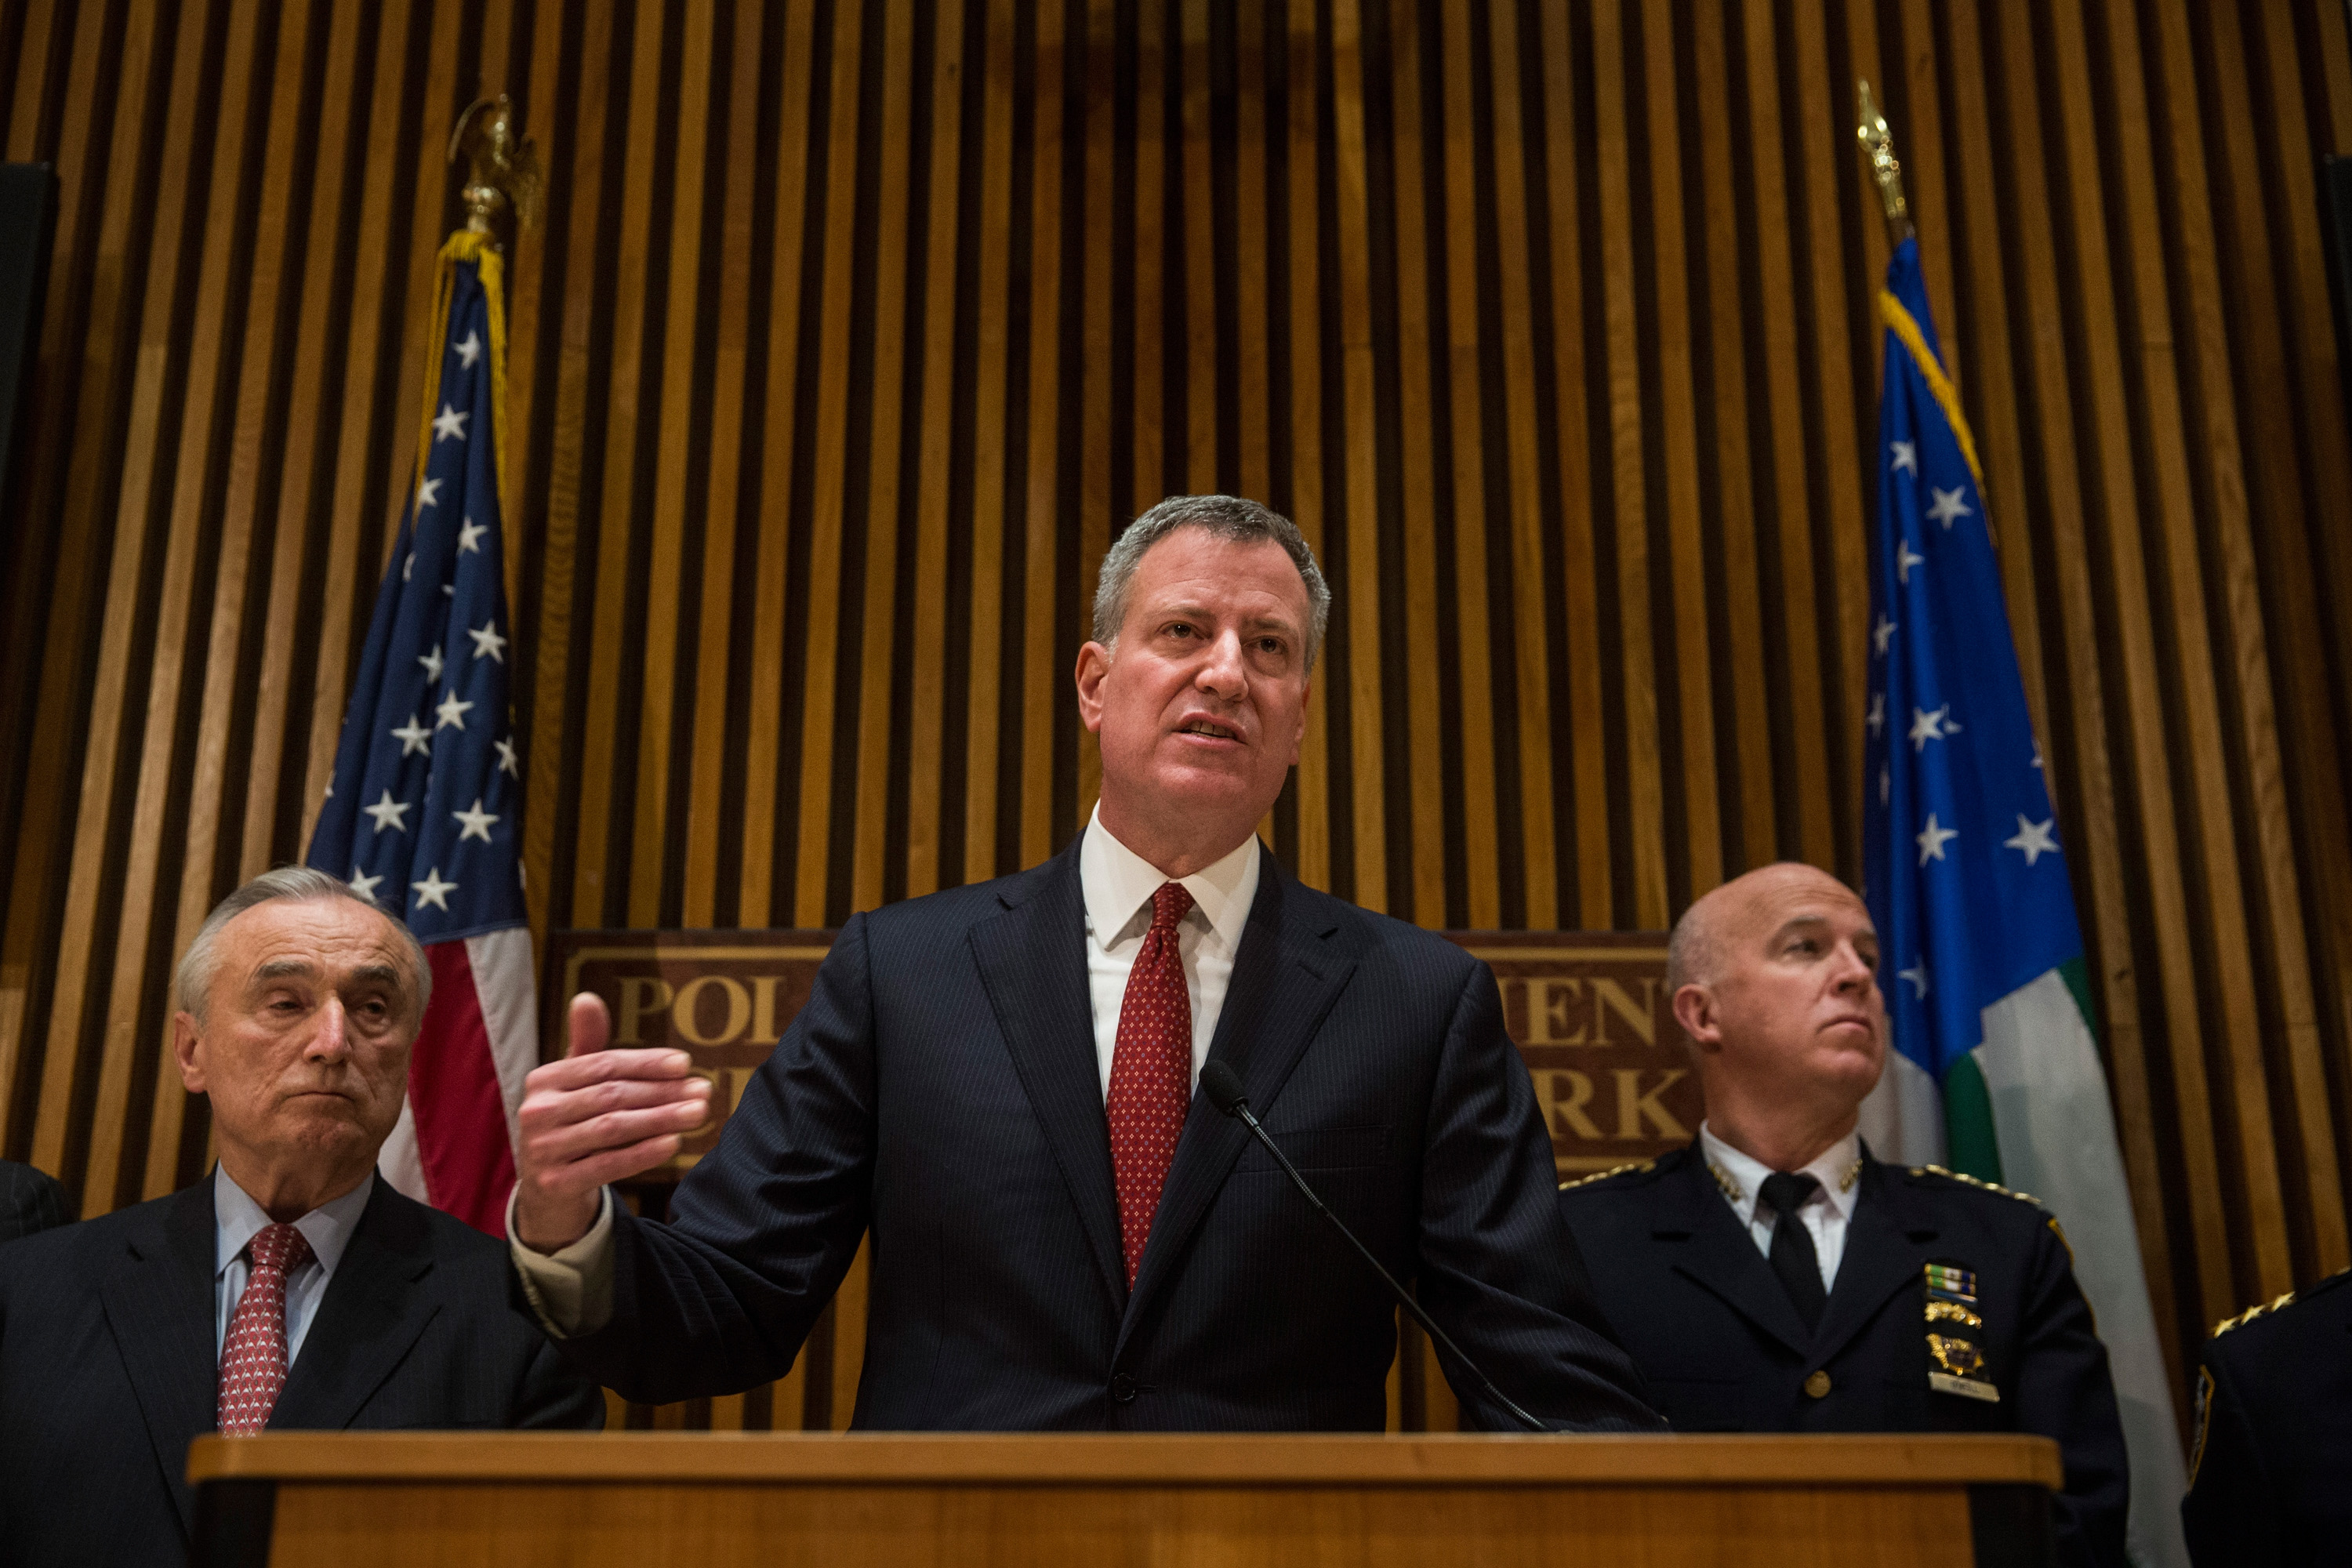 New York City Mayor Bill de Blasio, center, and New York Police Department Commissioner Bill Bratton, right, today. (Getty Images/Andrew Burton)